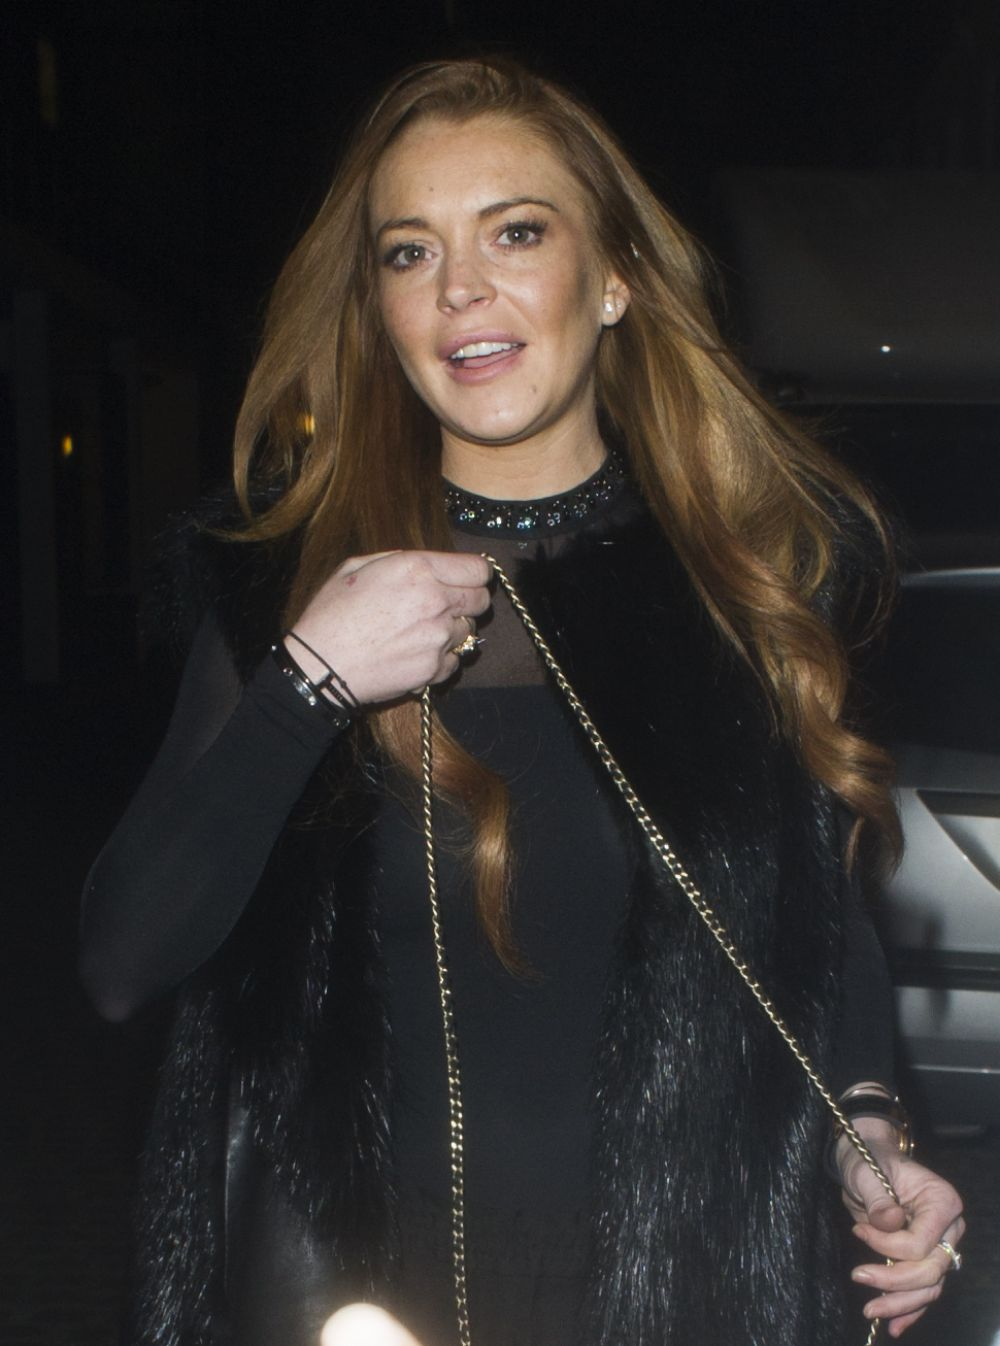 LINDSAY LOHAN at Chiltern Firehouse in London 02/13/2016